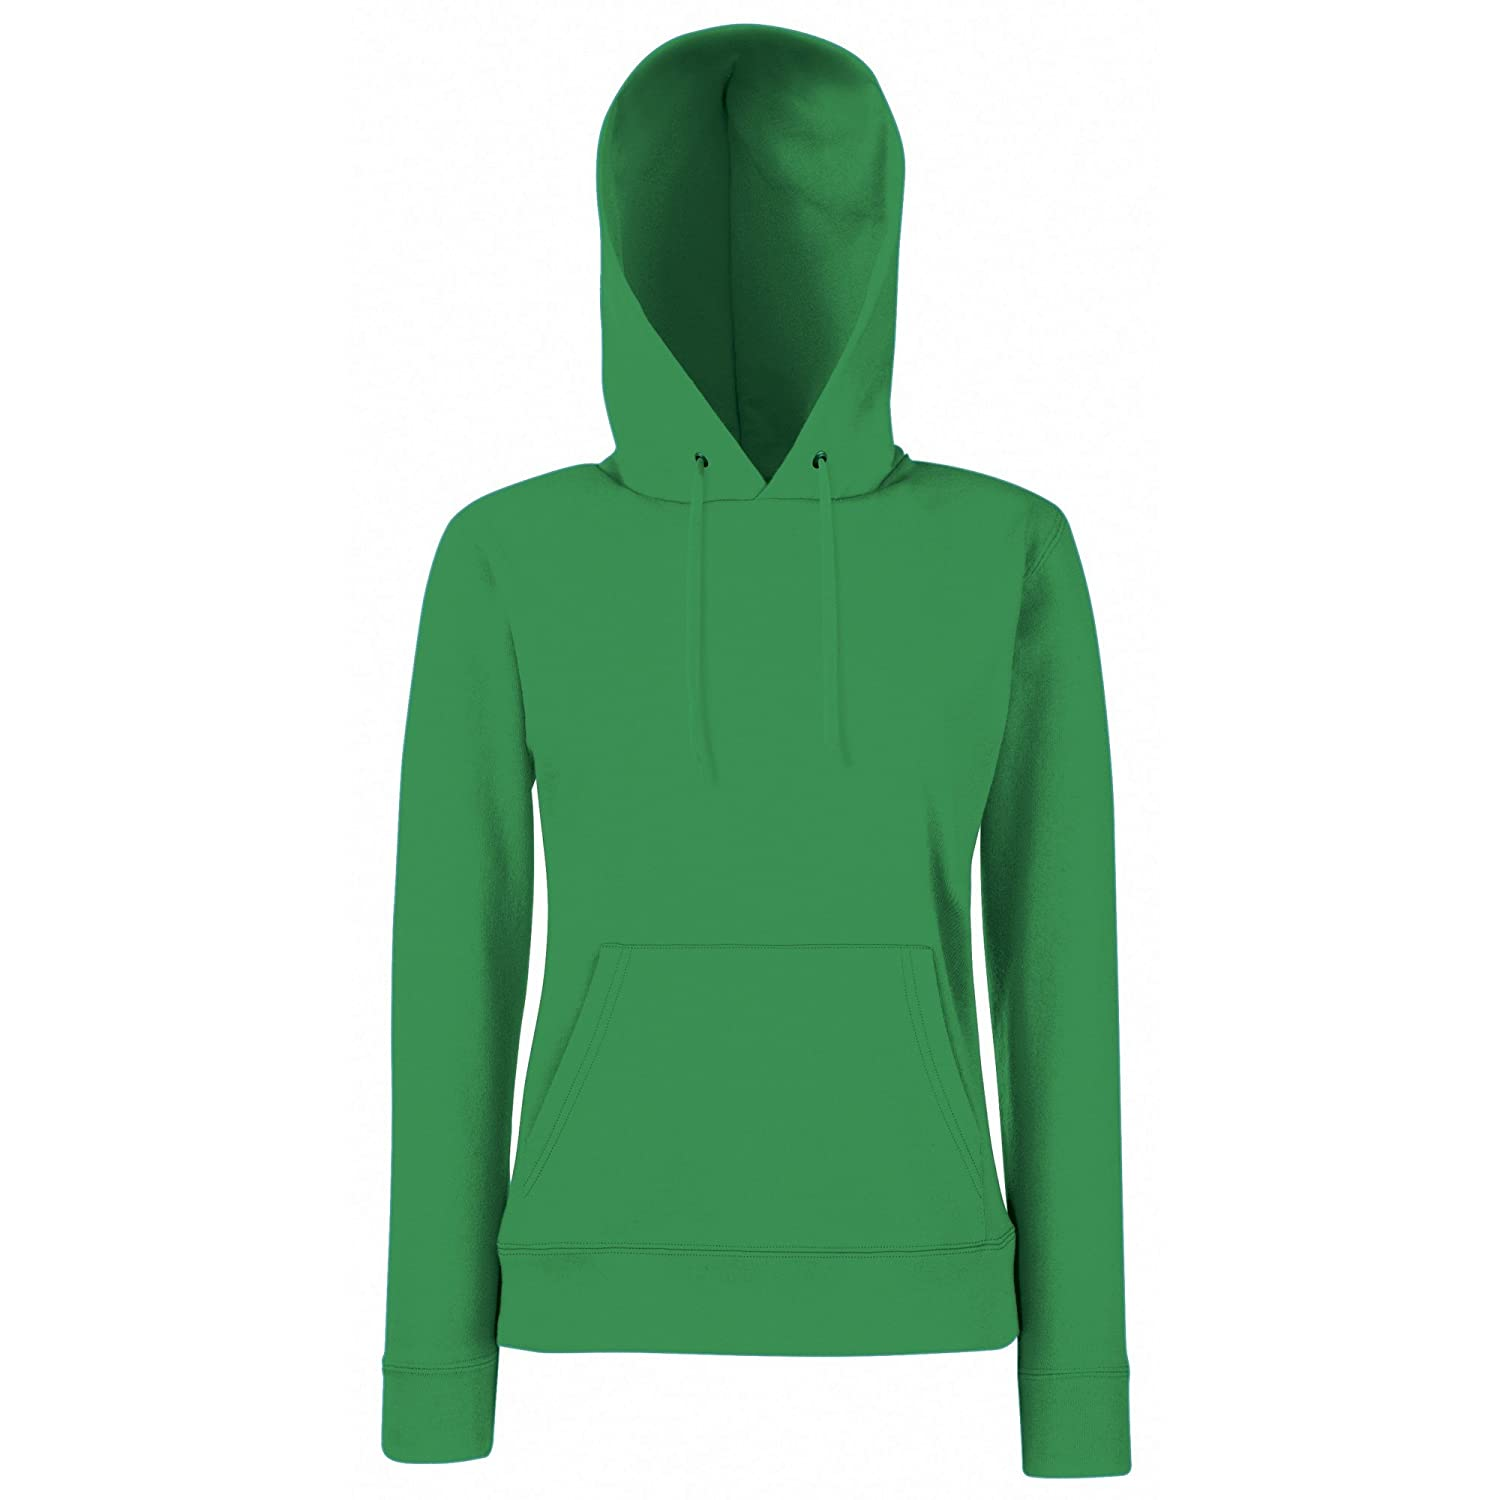 Fruit of the Loom Ladies Lady Fit Hooded Sweatshirt/Hoodie